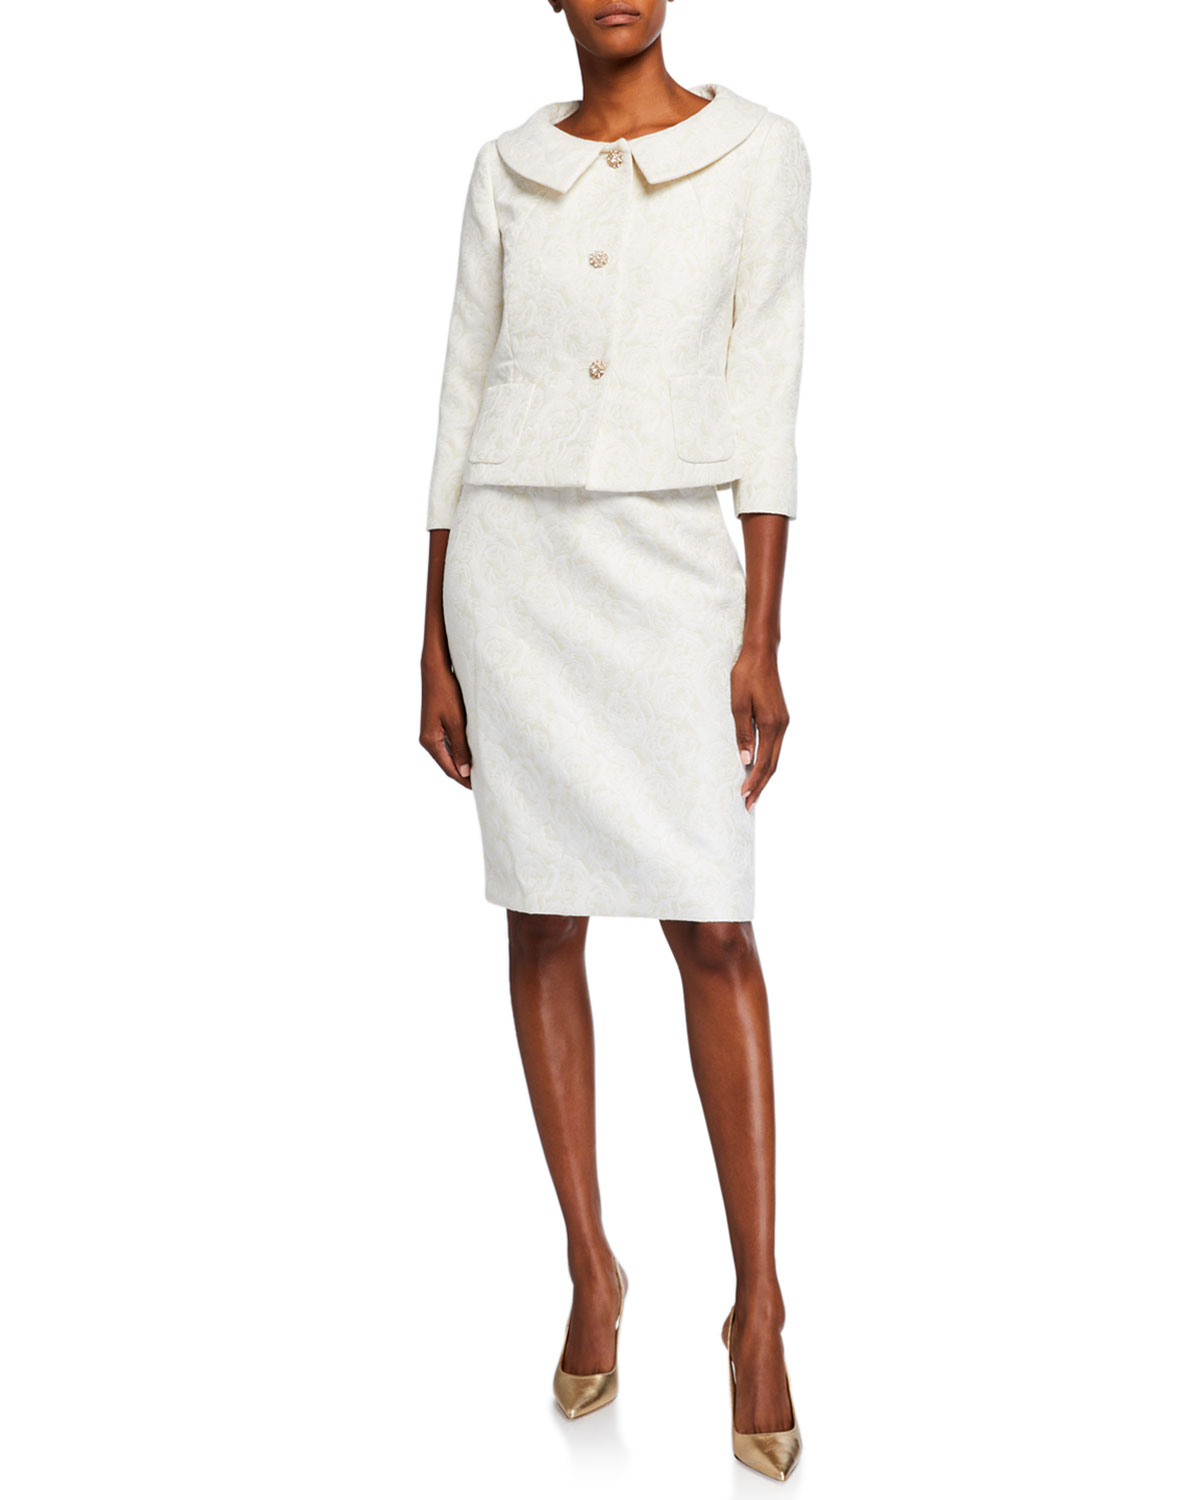 Albert Nipon Rose Jacquard Two-Piece Jacket & Dress Set